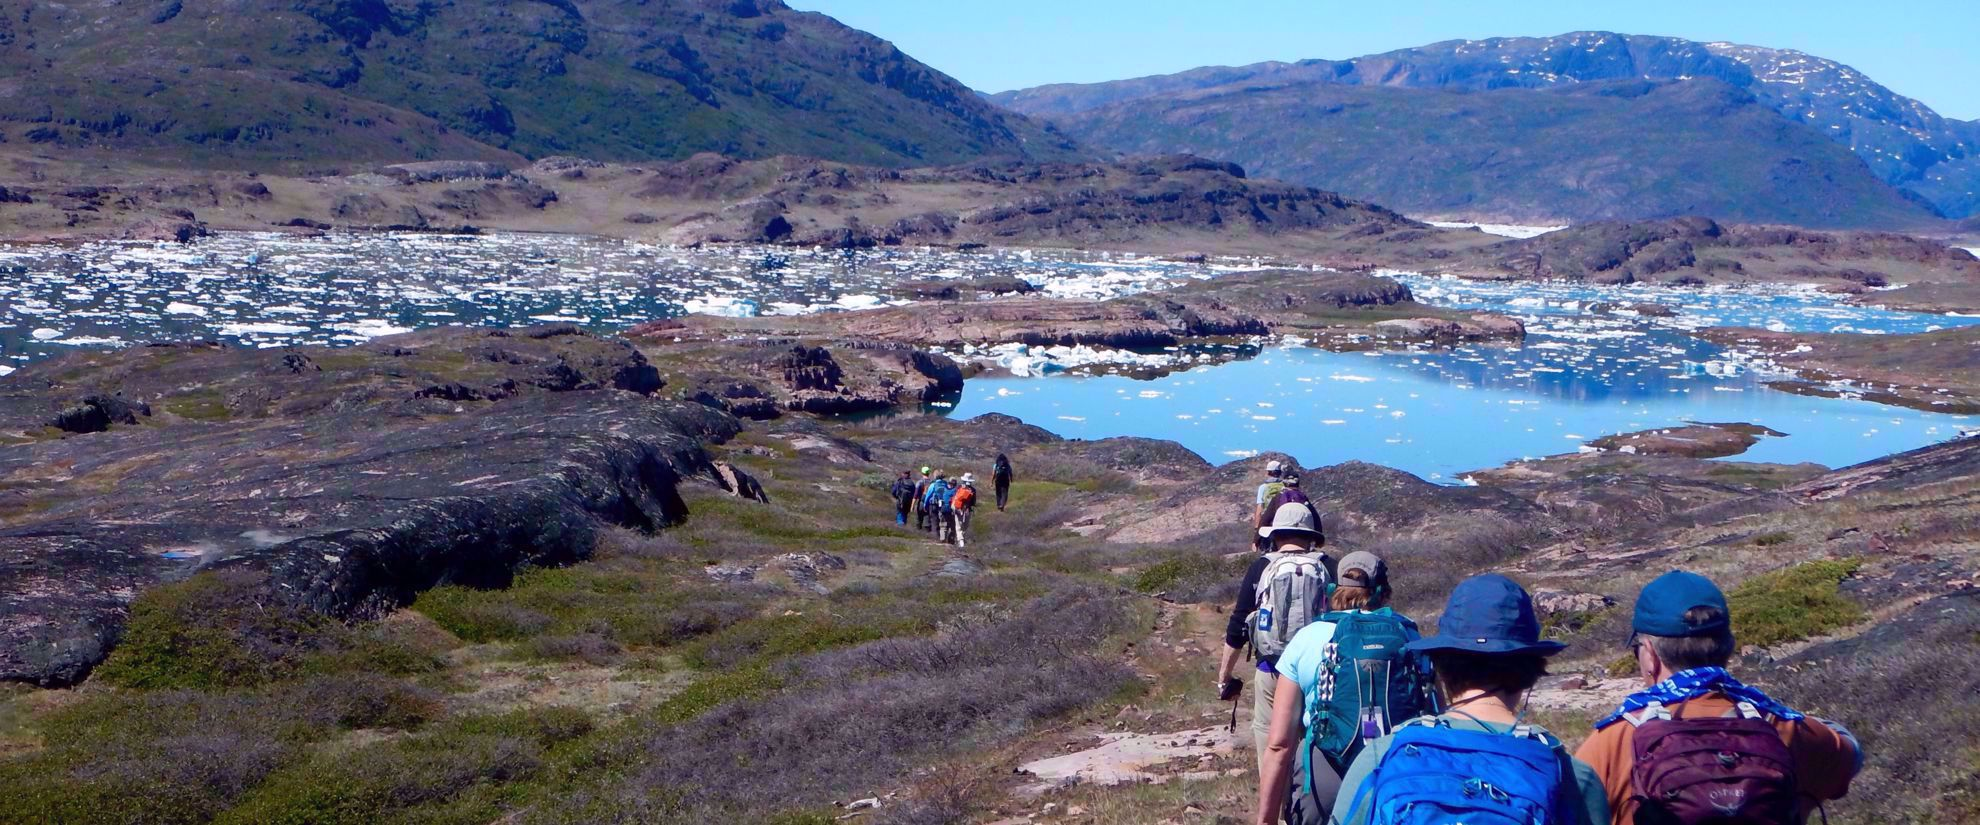 women's hiking group in greenland